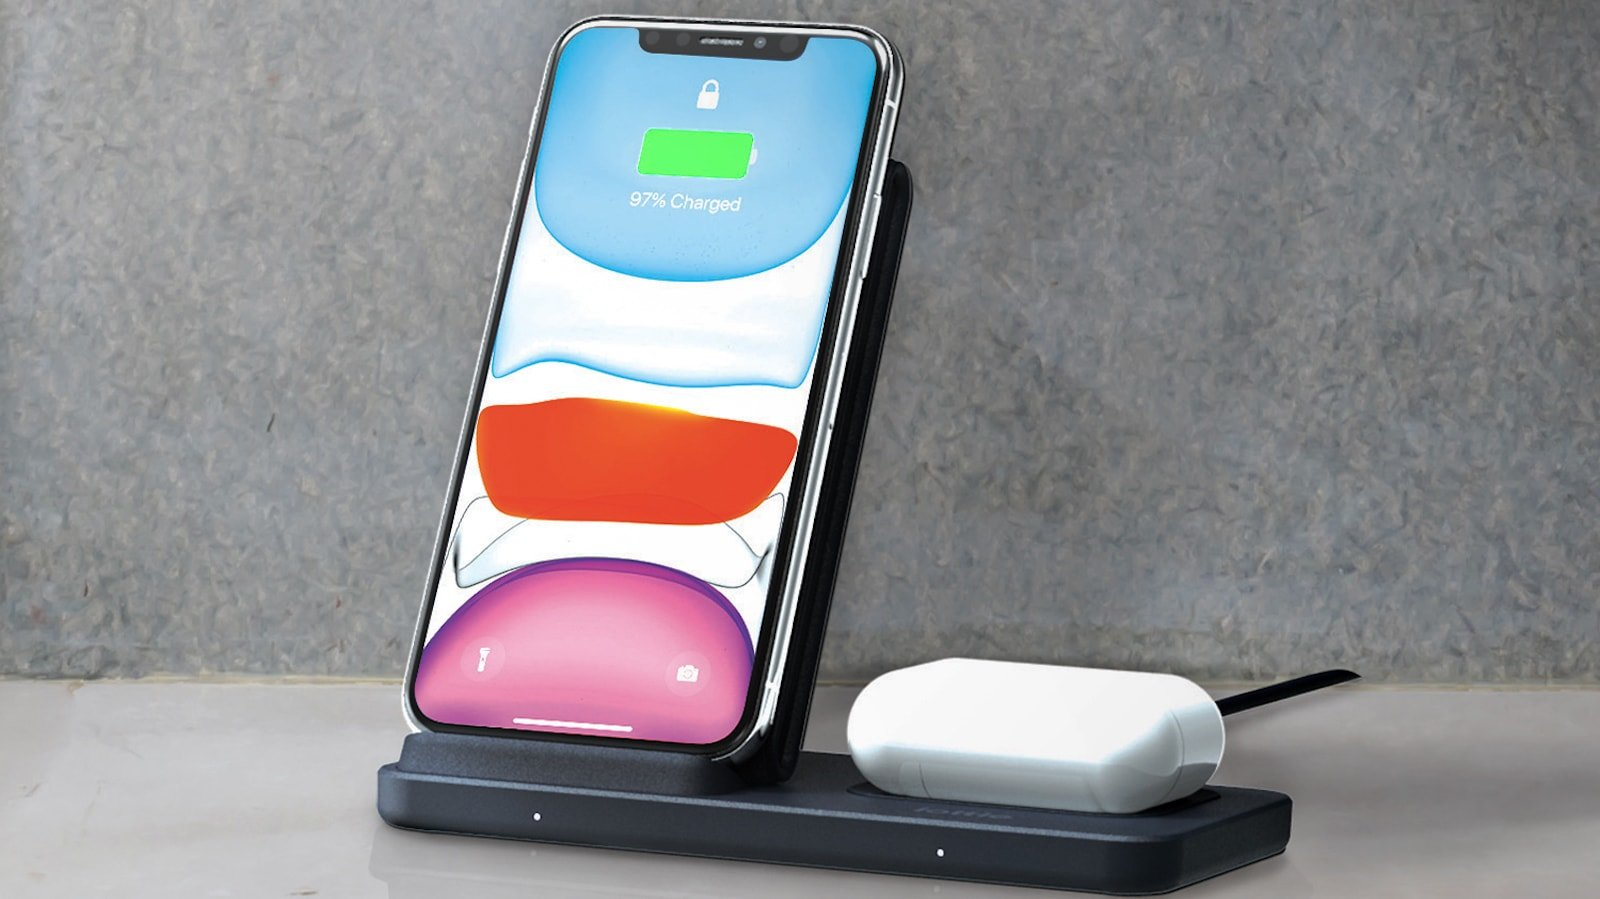 iOttie iON Wireless Duo Qi-enabled charging stand charges two devices at the same time